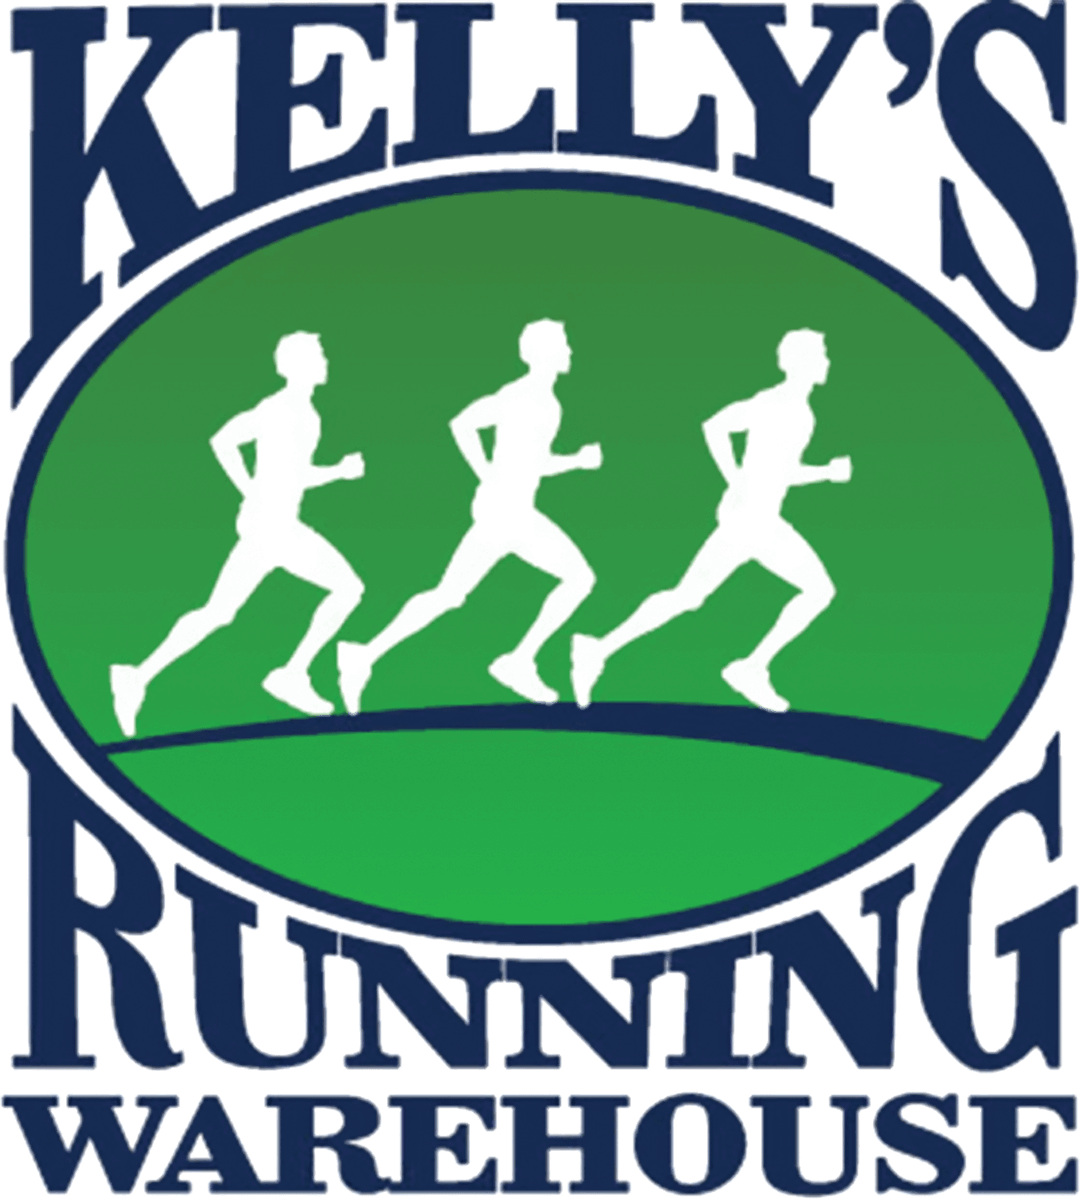 Kellys Running Warehouse Coupon Codes